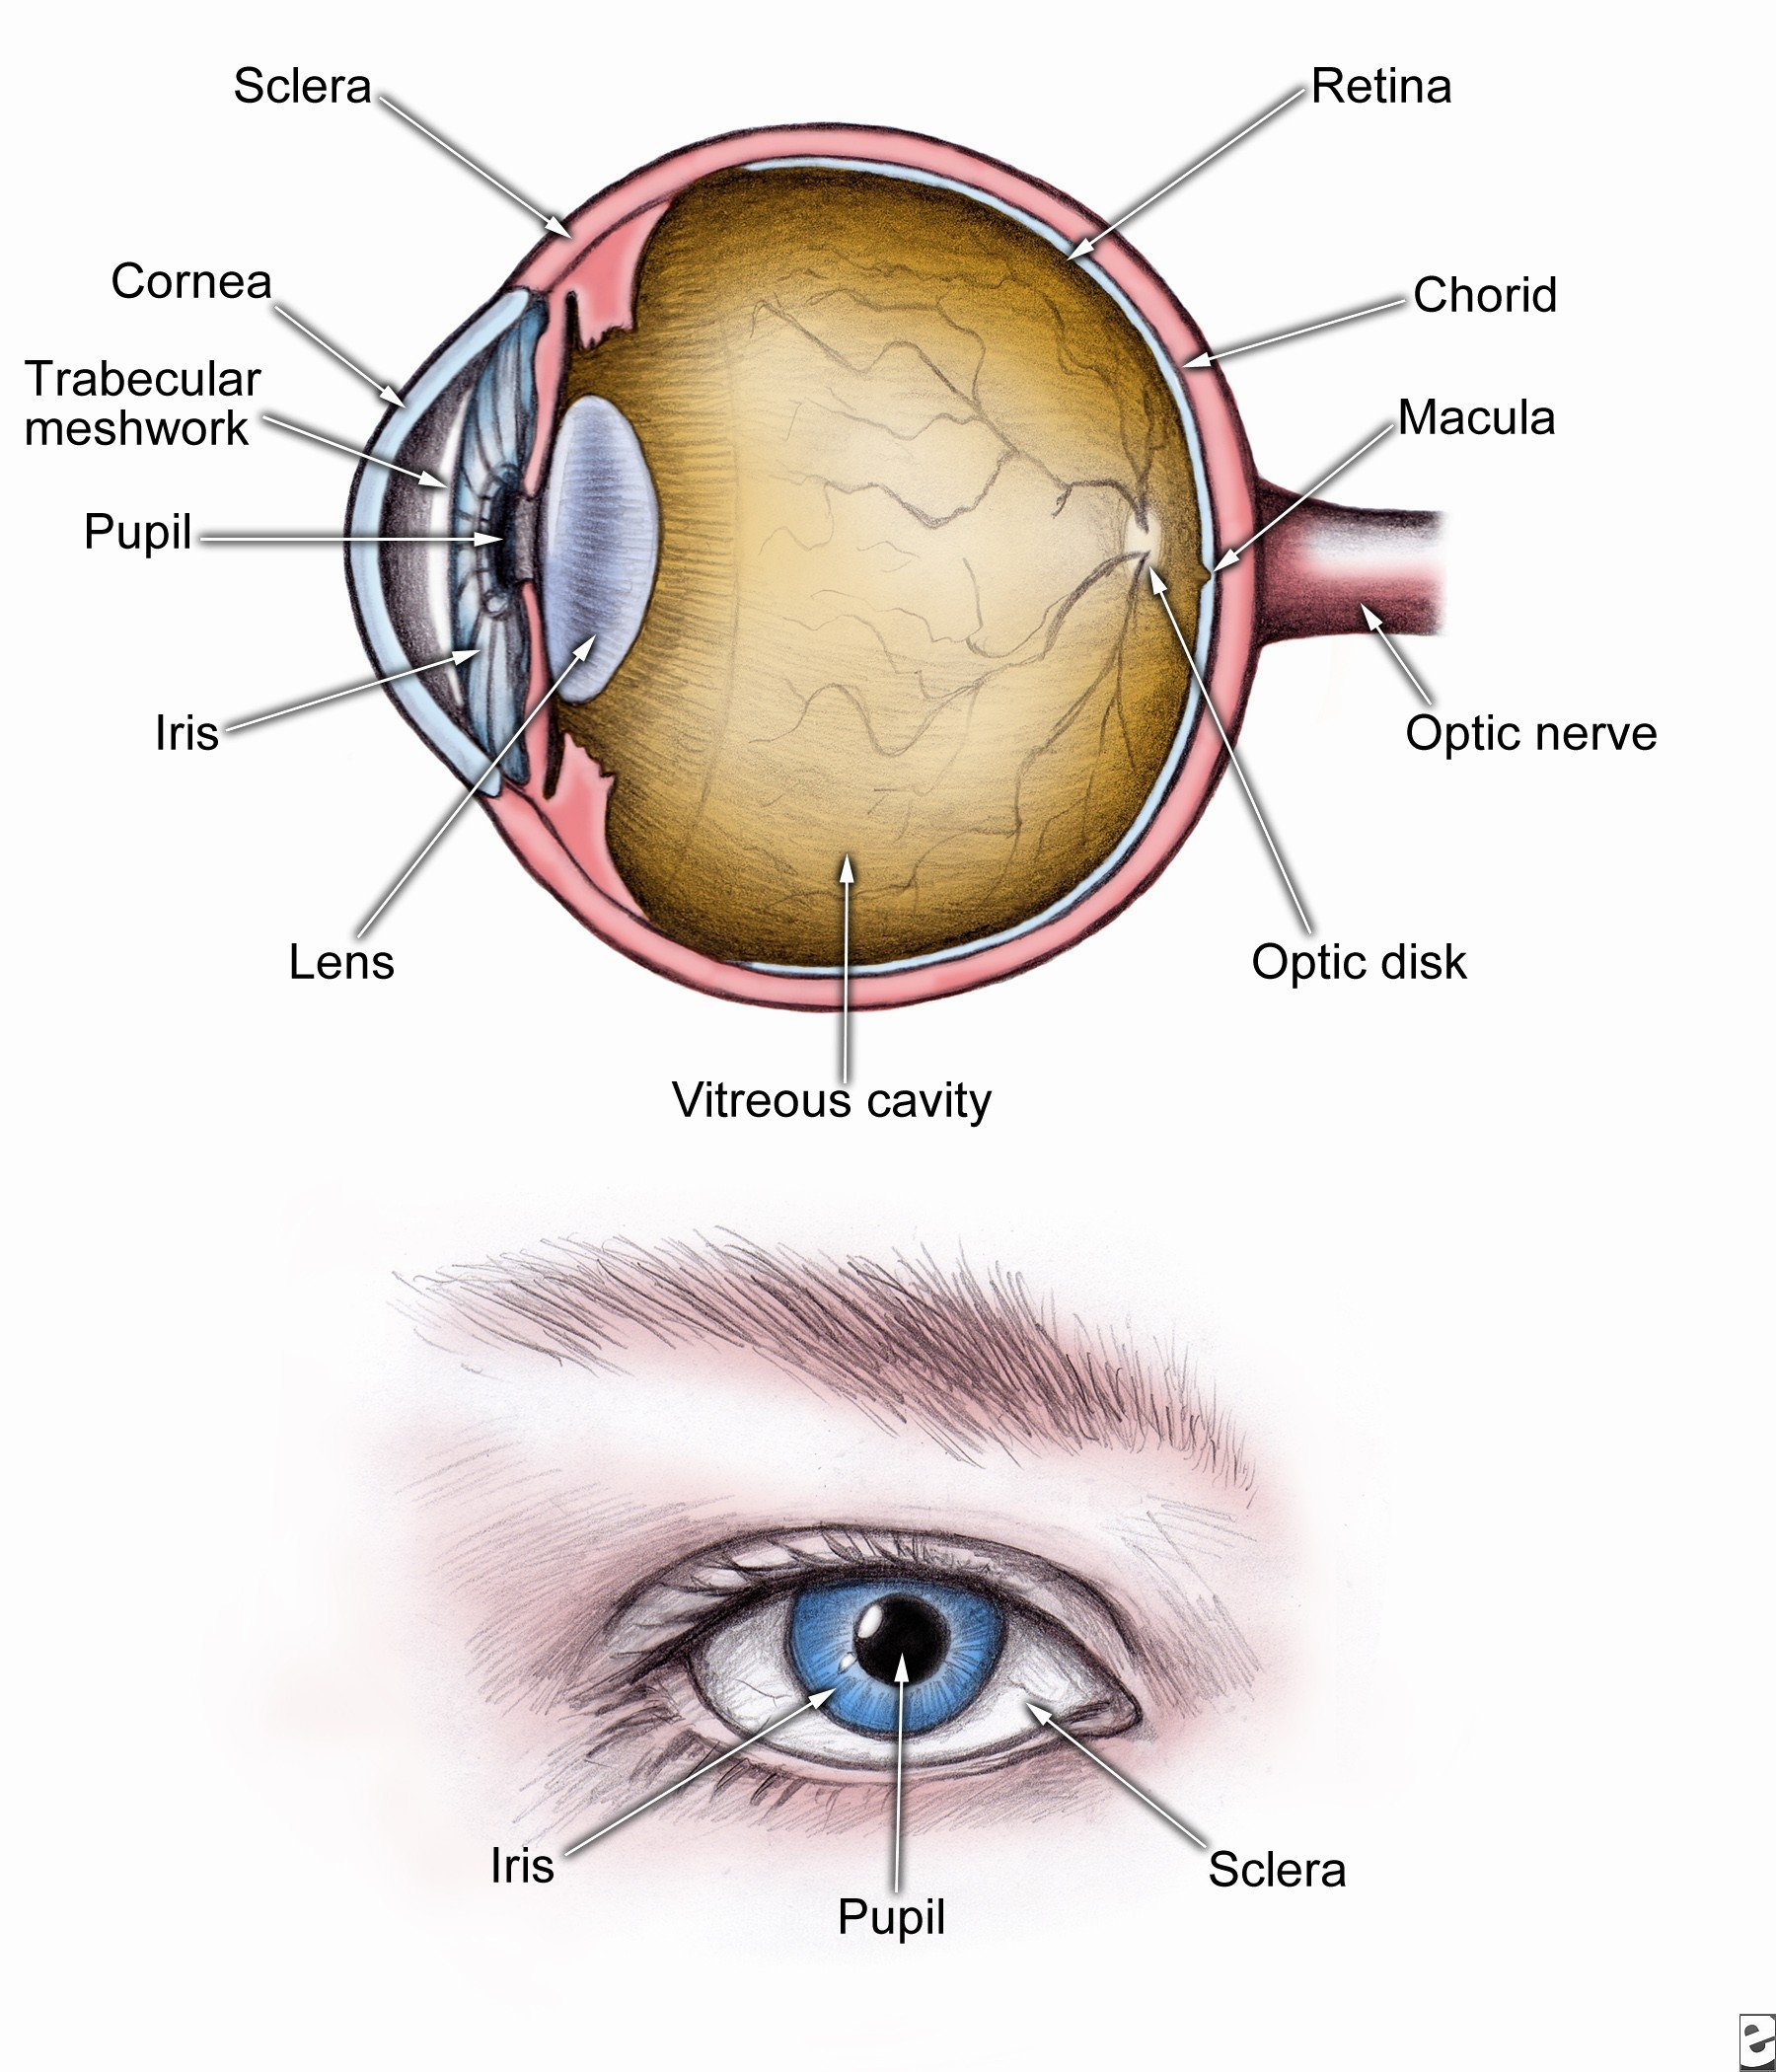 A cataract refers to the lens of the eye when it has a condition that makes it milky, progressing to opacity that causes blindness. Surgical treatment with an artificial lens is routine and usually cures the condition.